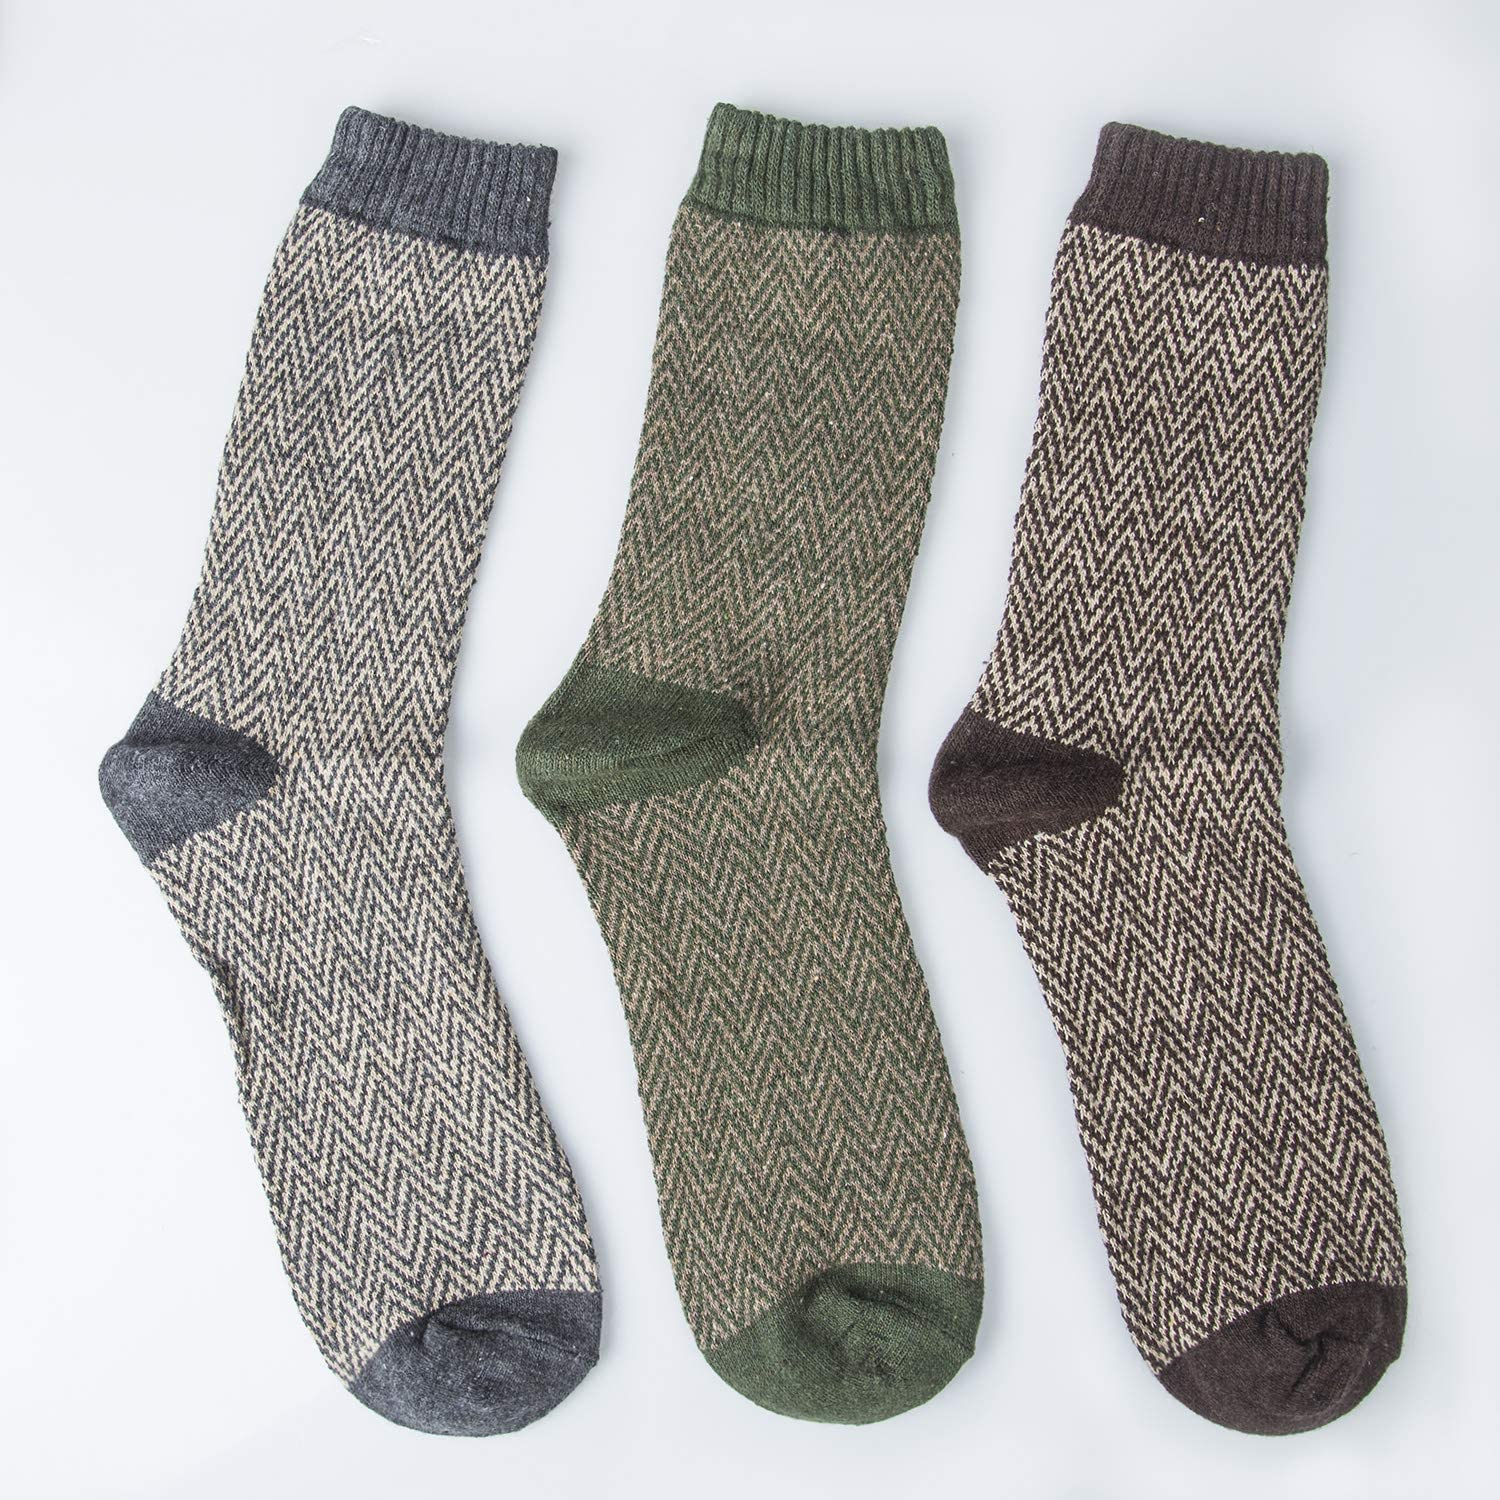 Thick Warm Breathable Crew Socks for Winter 6//5 Pairs Mens Wool Socks